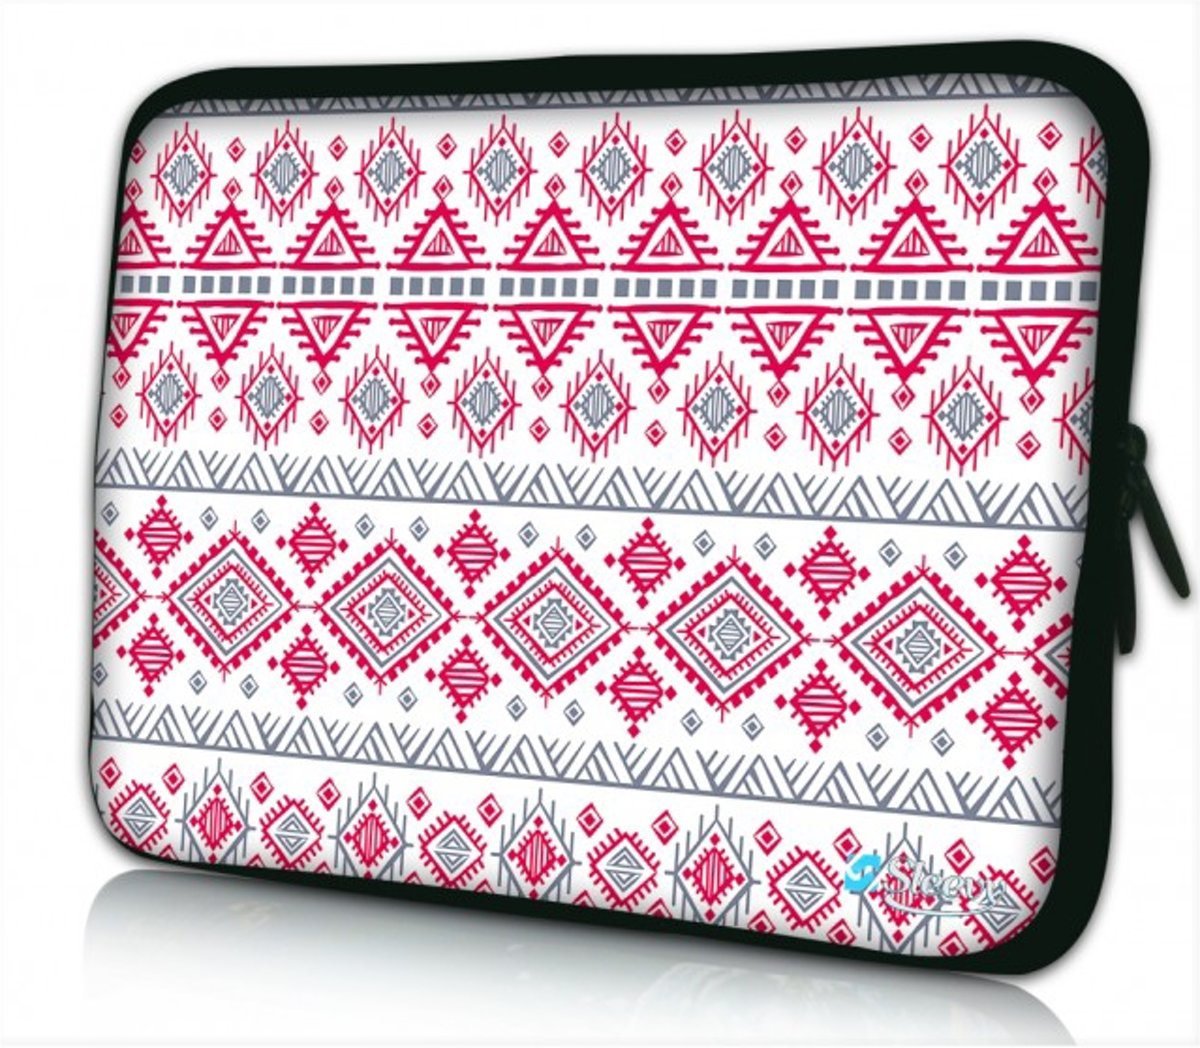 Sleevy 10 laptop/tablet hoes artistiek patroon - tabletsleeve - tablet sleeve - ipad sleeve